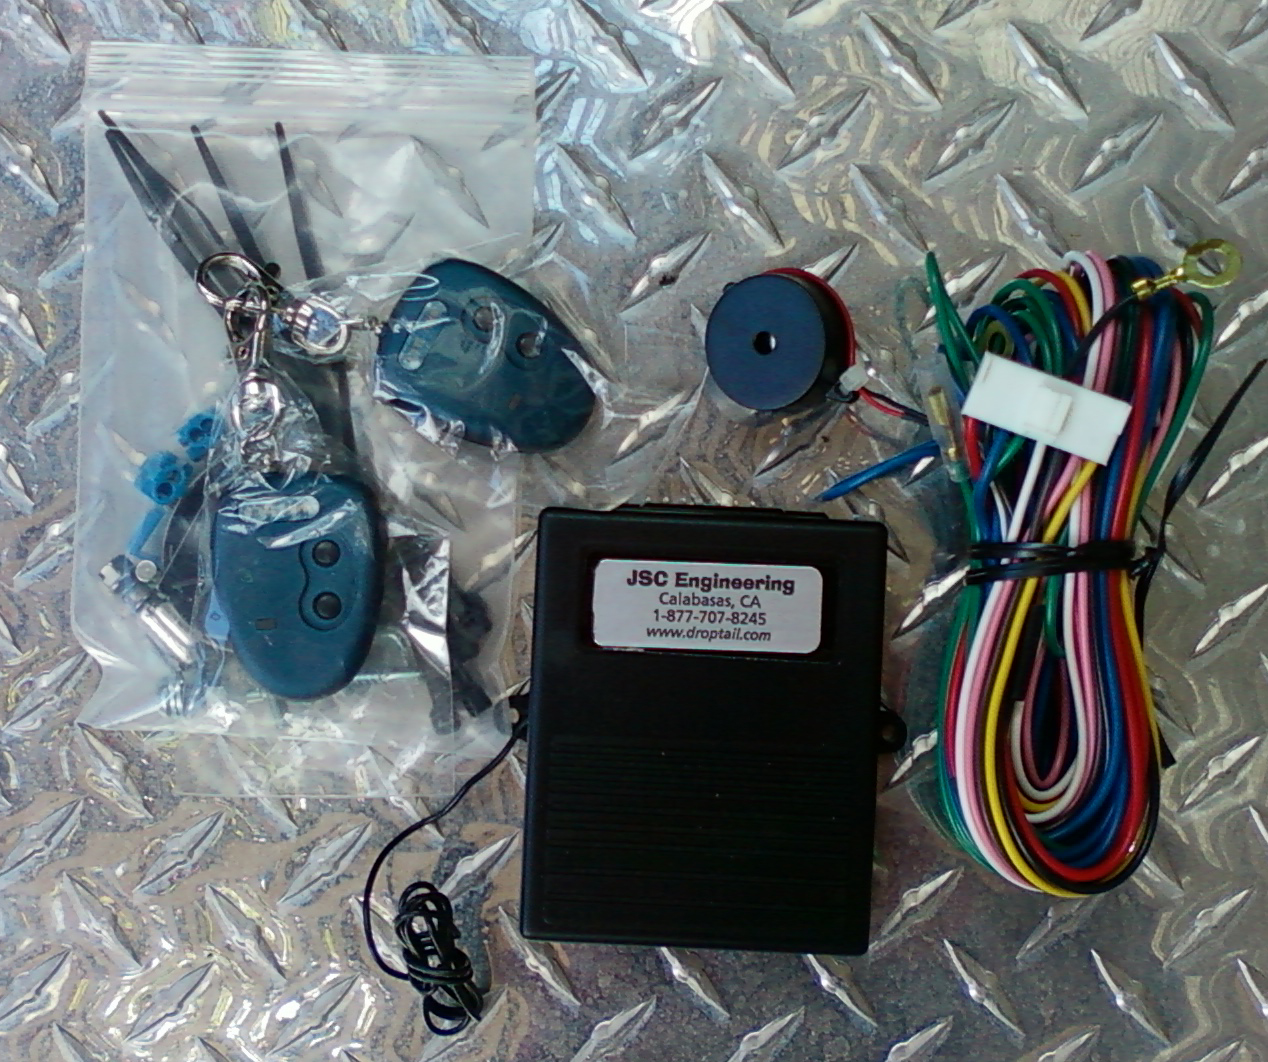 JSC Engineering TDI Diesel Performance Controller